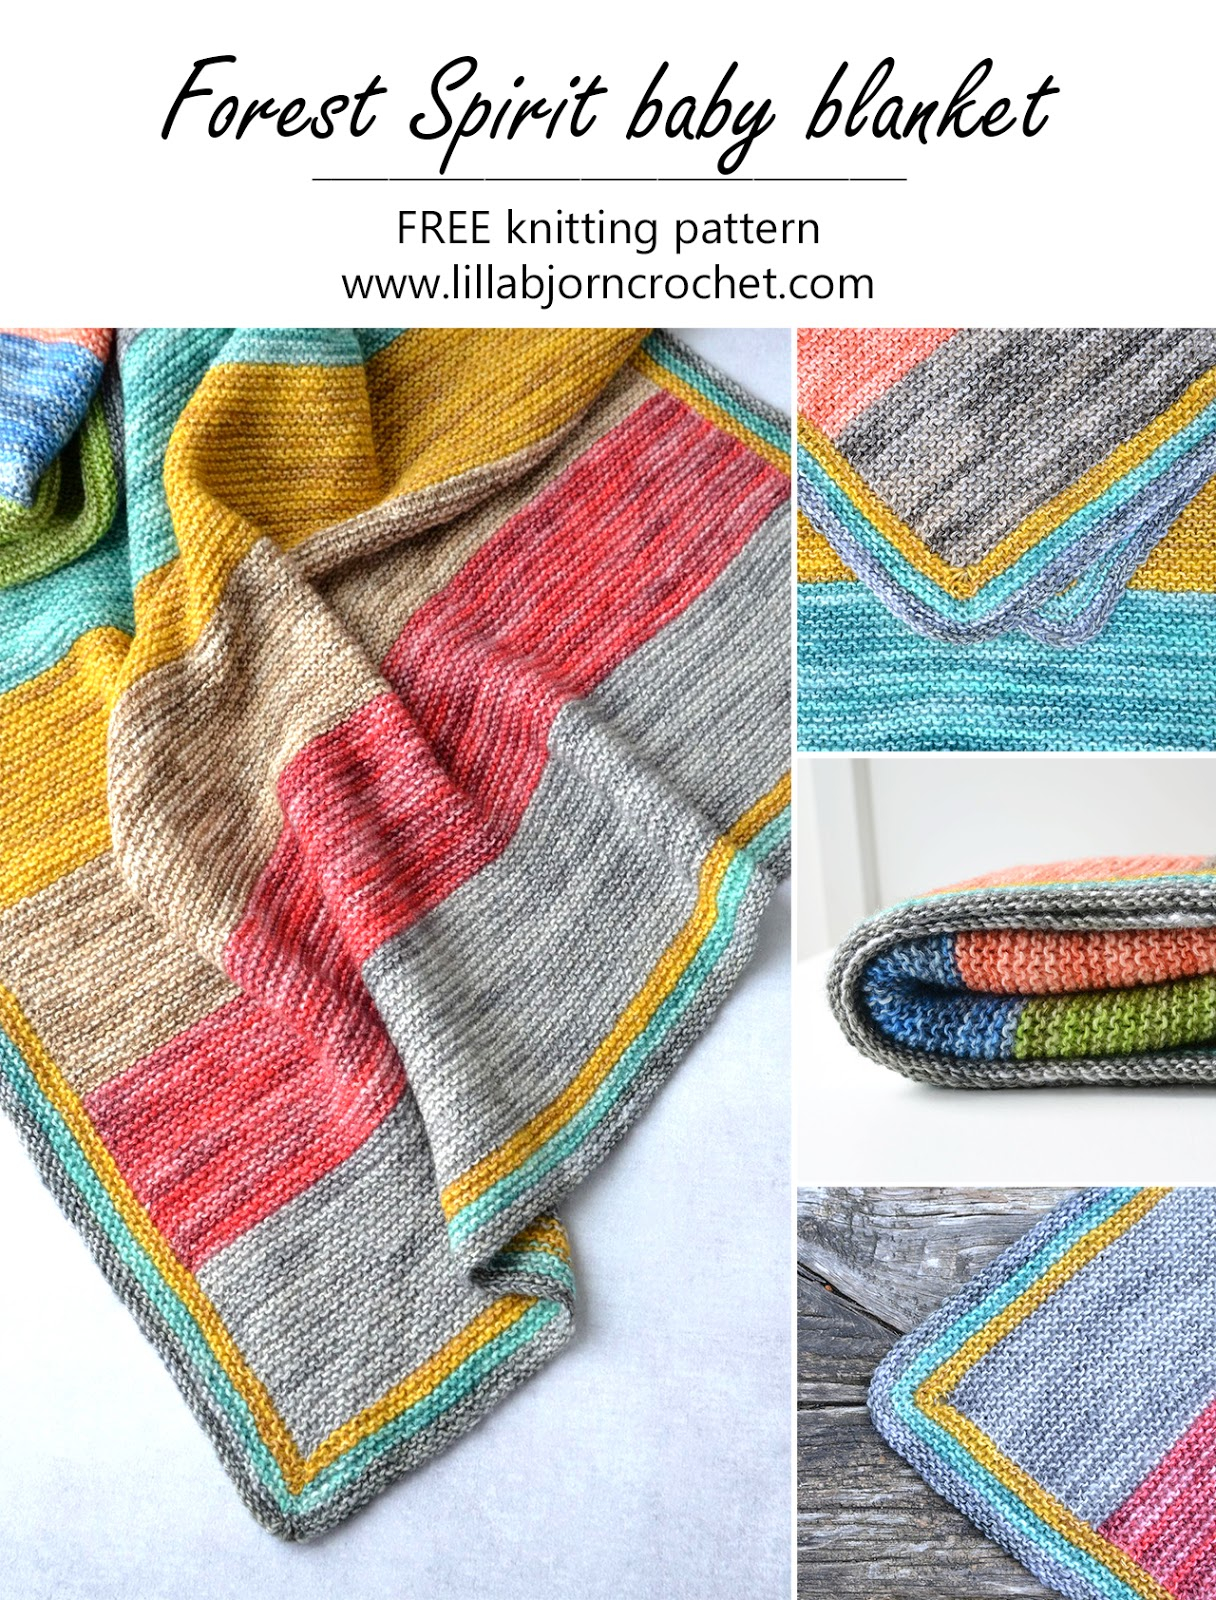 Free Knitting Patterns For Baby Blankets Forest Spirit Ba Blanket Free Knitting Pattern Lillabjrns